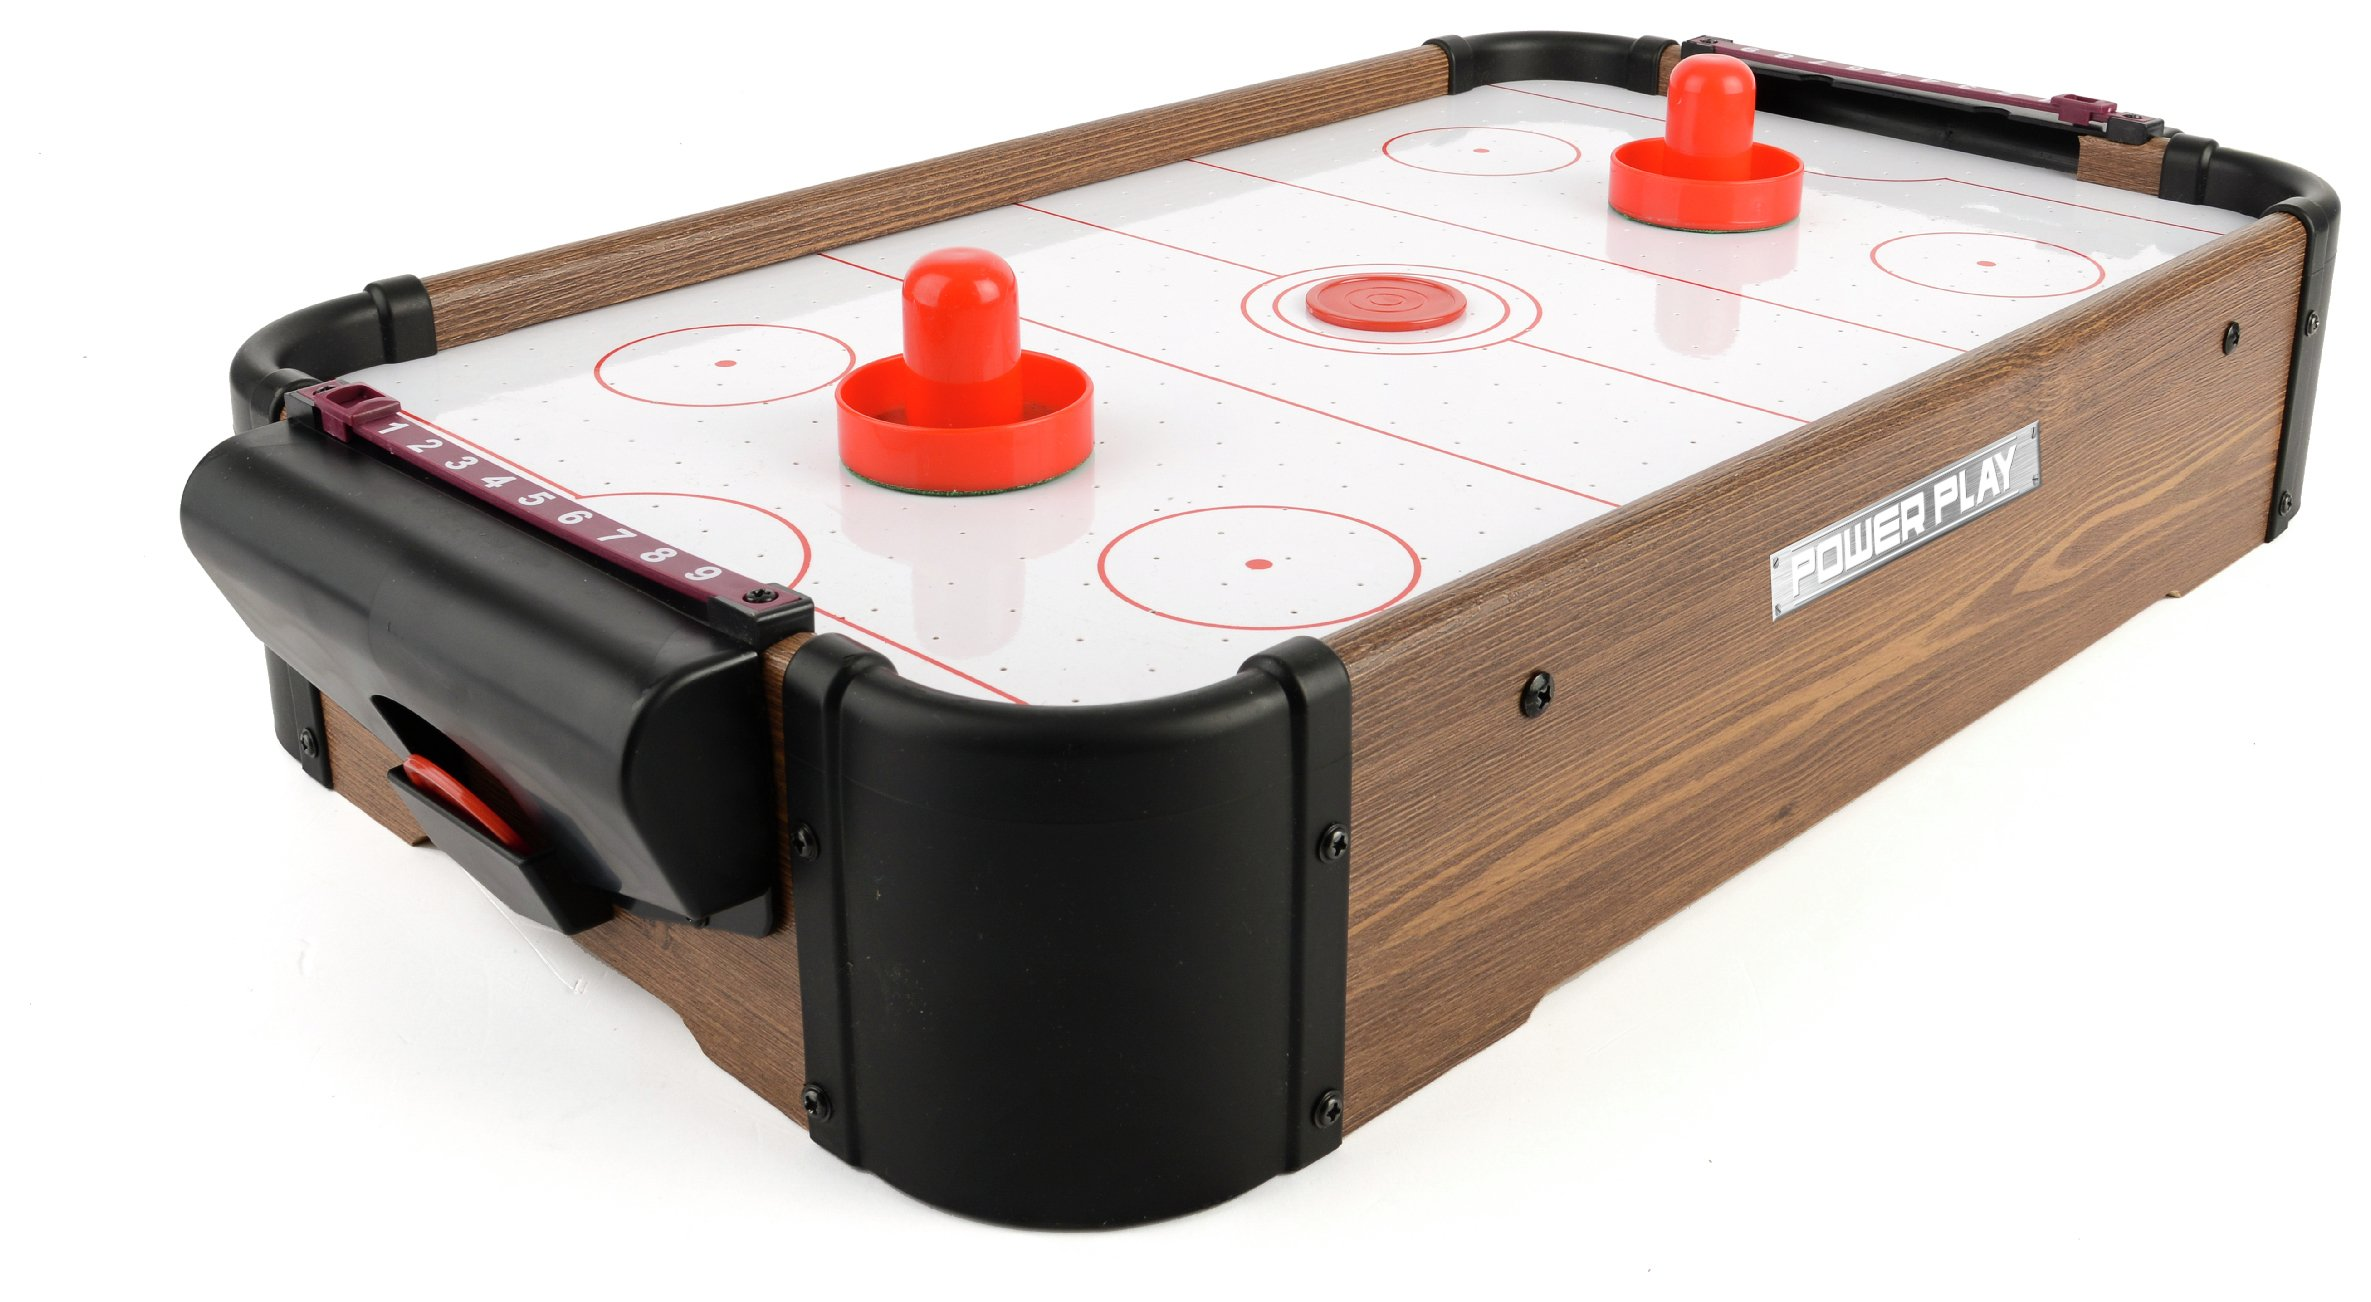 27 Inch Air Hockey Table